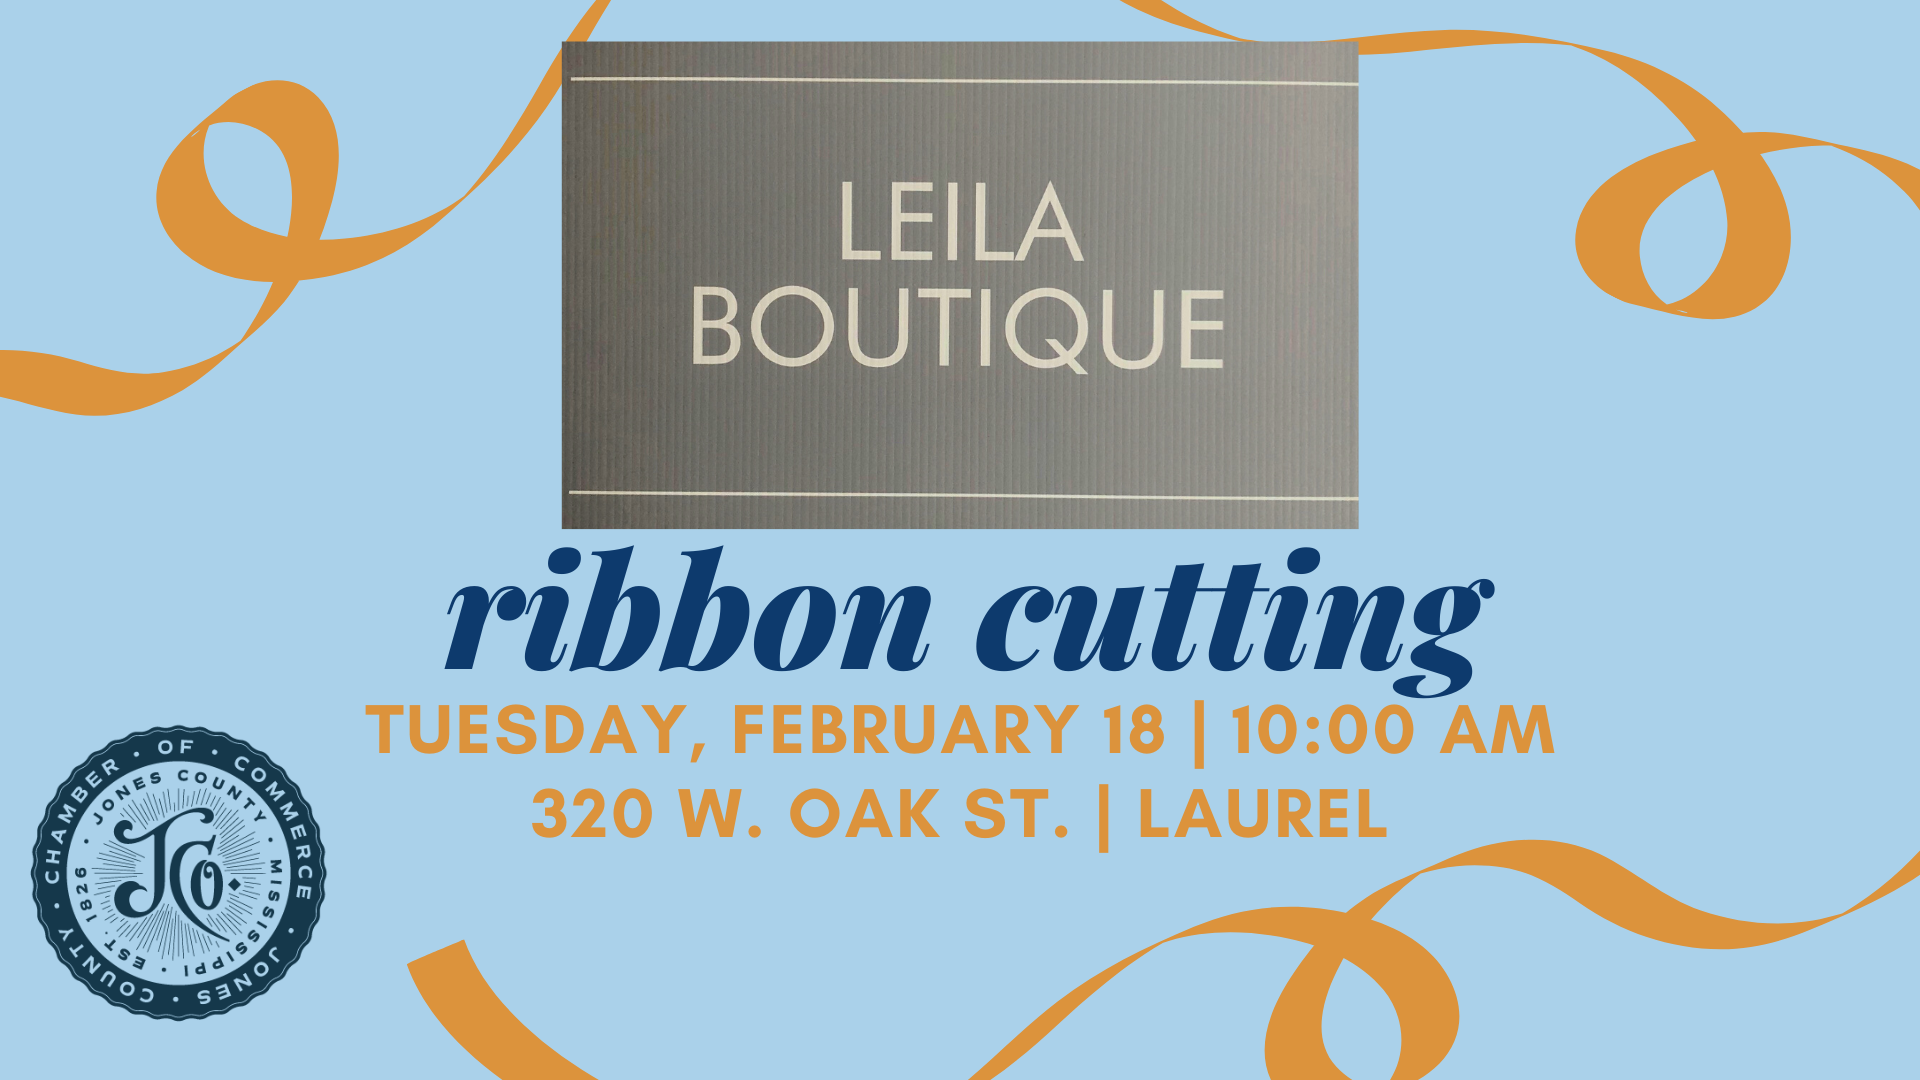 The City of Laurel, Leila Boutique Ribbon Cutting